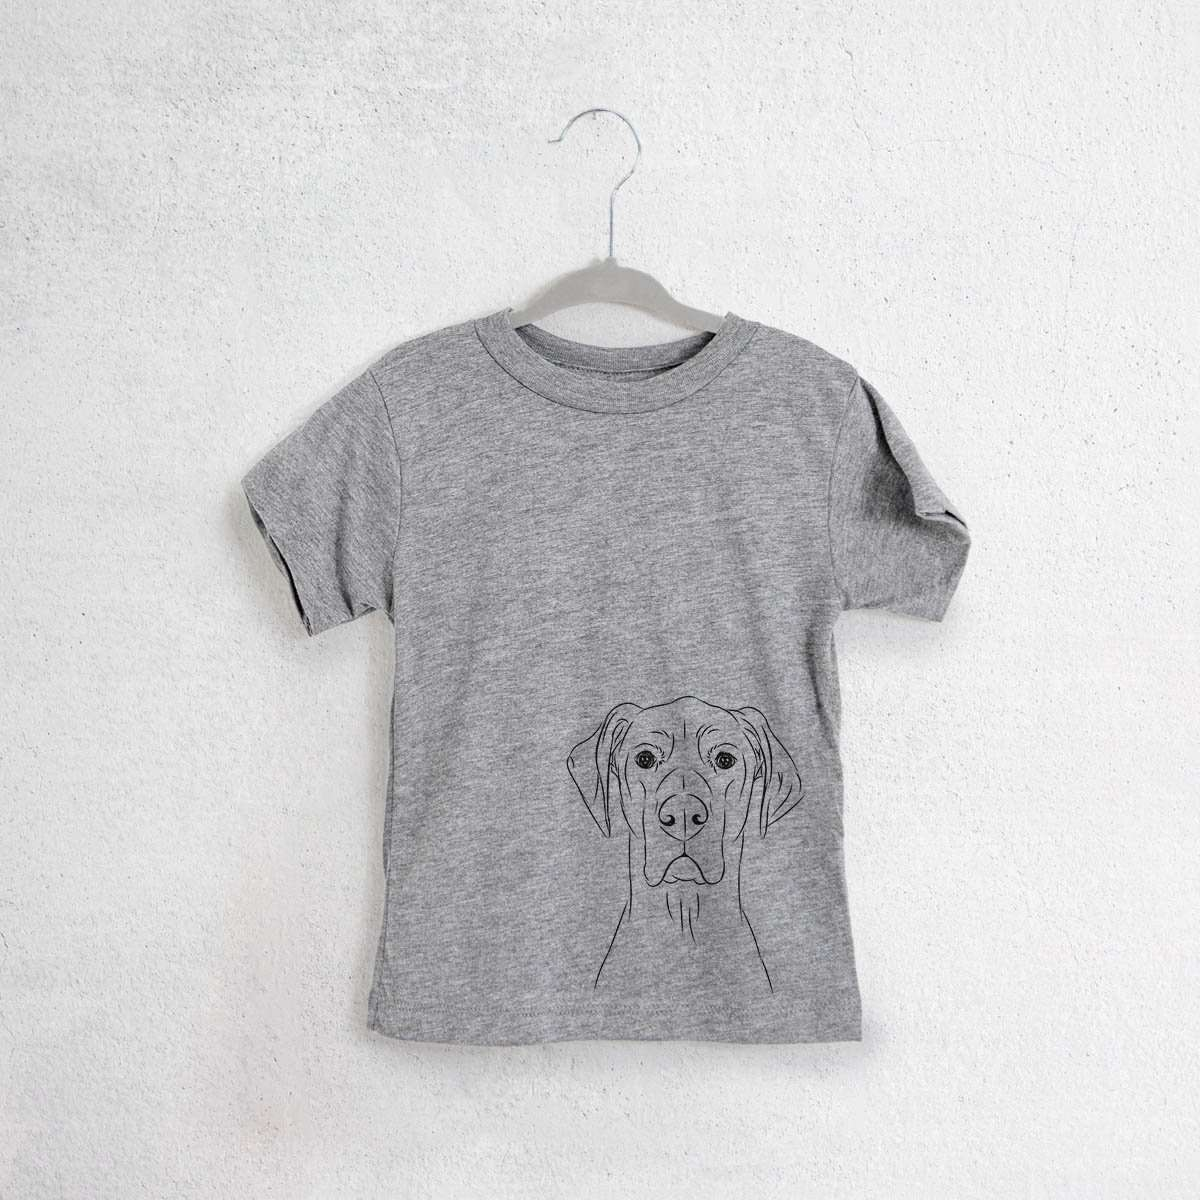 Maddox the Great Dane - Kids/Youth/Toddler Shirt